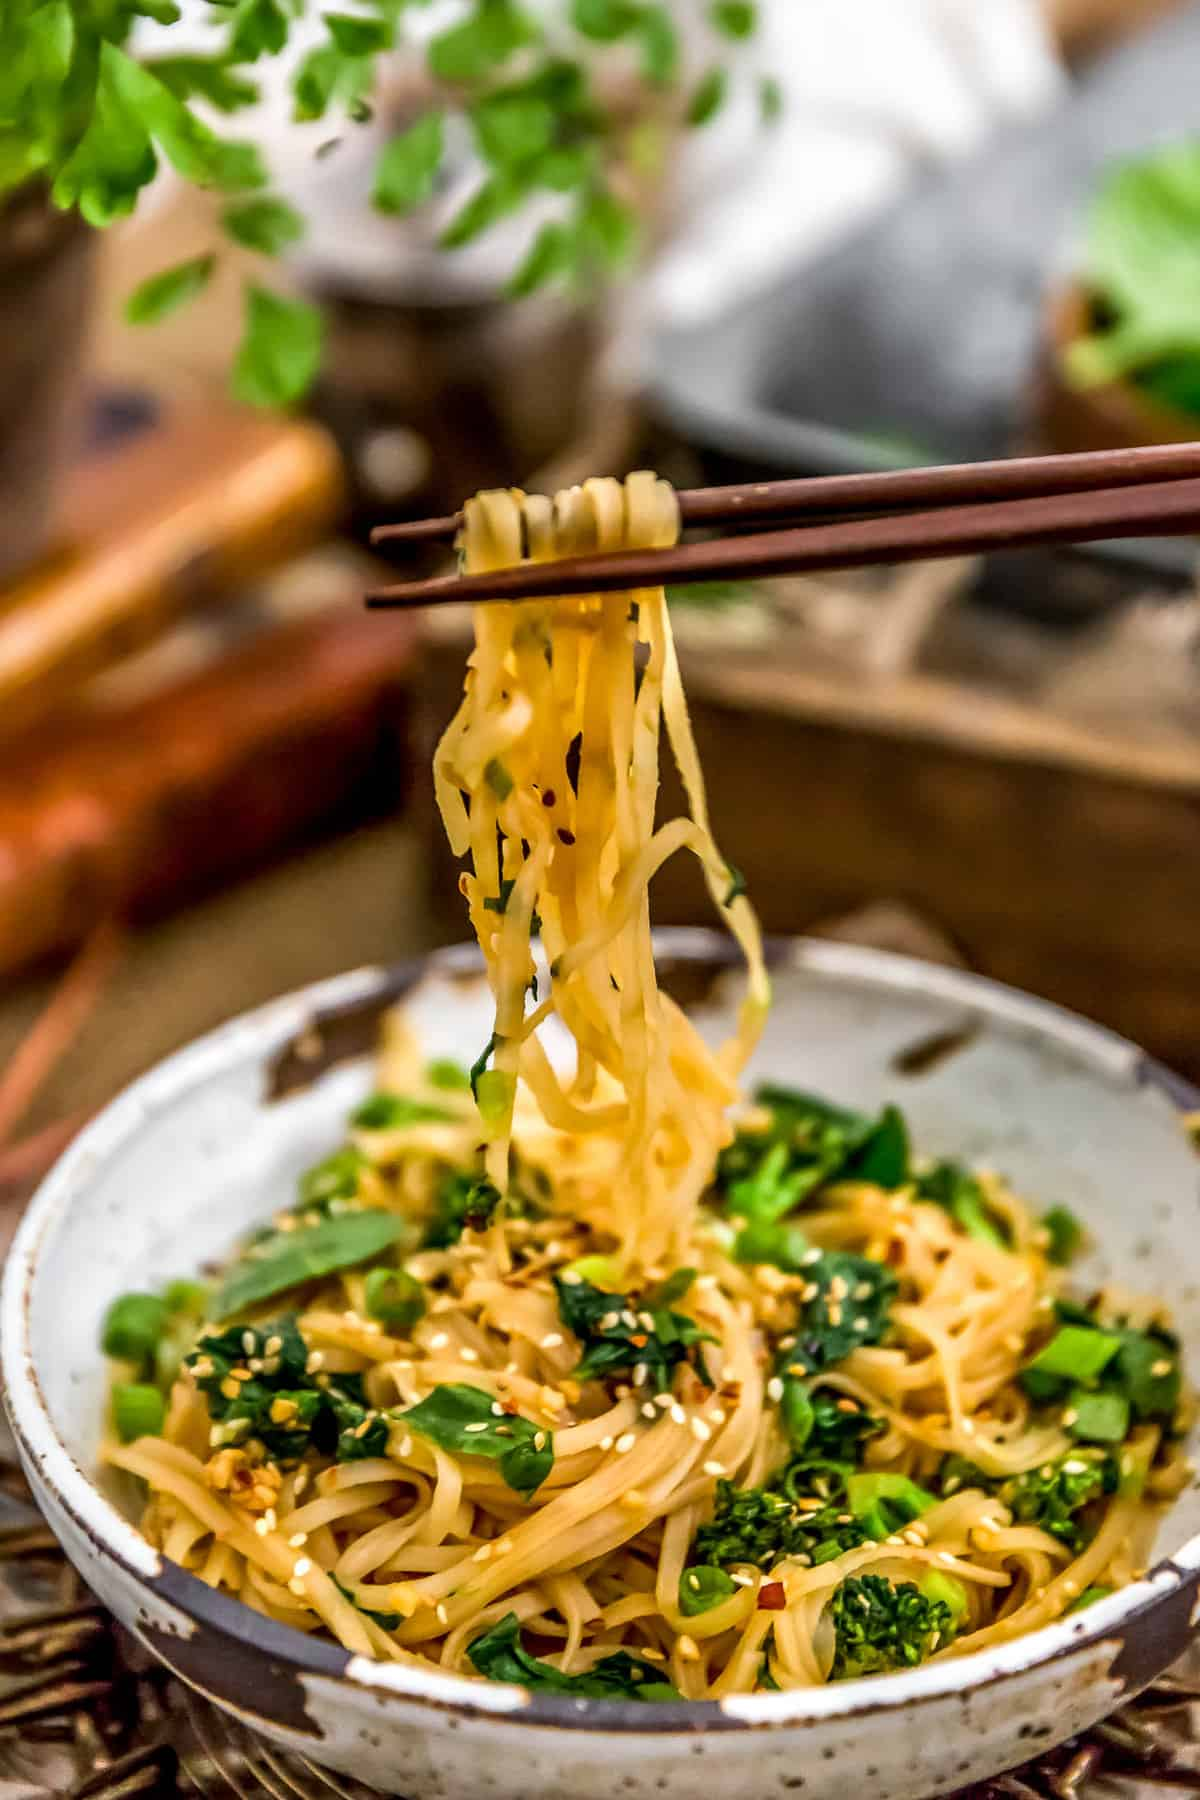 Oil Free Garlic Sticky Noodles with chopsticks